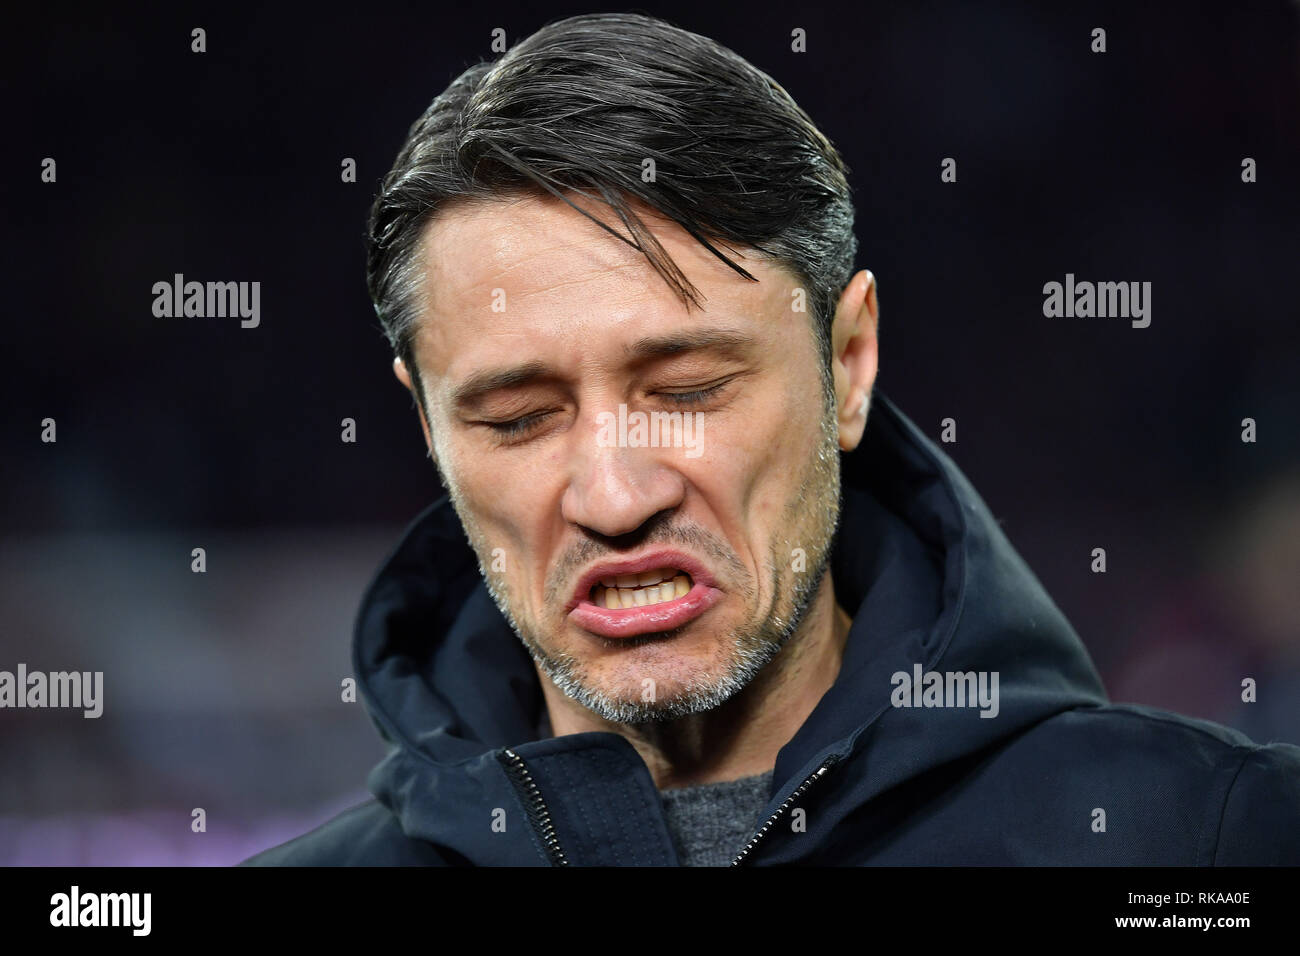 Munich, Germany. 09th Feb, 2019. Niko KOVAC (coach FC Bayern Munich), contrite, angry, anger, anger, exasperating, single image, single image, portrait, portrait, portraits. Football 1. Bundesliga, 21.matchday, matchday21, FC Bayern Munich M) - FC Schalke 04 (GE) 3-1, on 09.02.2019 in Muenchen ALLIANZARENA, DFL REGULATIONS PROHIBIT ANY USE OF PHOTOGRAPH AS IMAGE SEQUENCES AND/OR QUASI VIDEO. | usage worldwide Credit: dpa/Alamy Live News - Stock Image